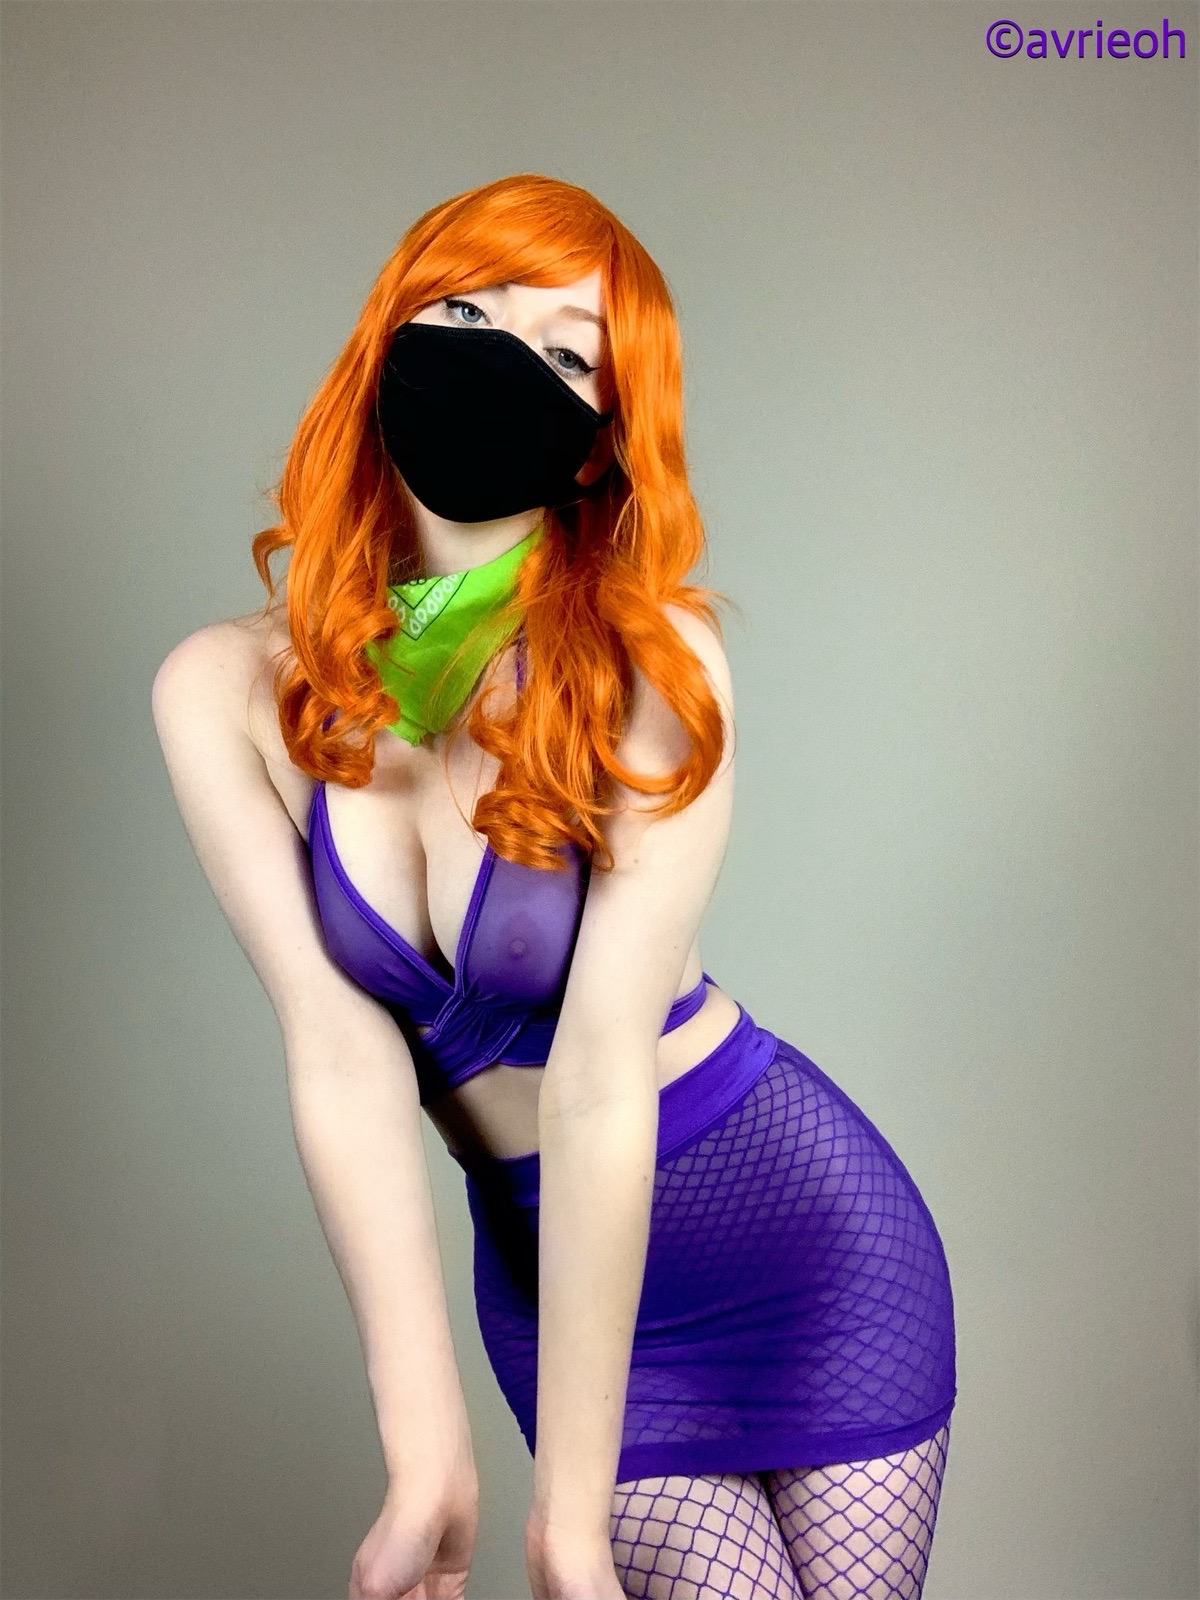 Boudoir Daphne Blake from Scooby Doo by AvrieOh